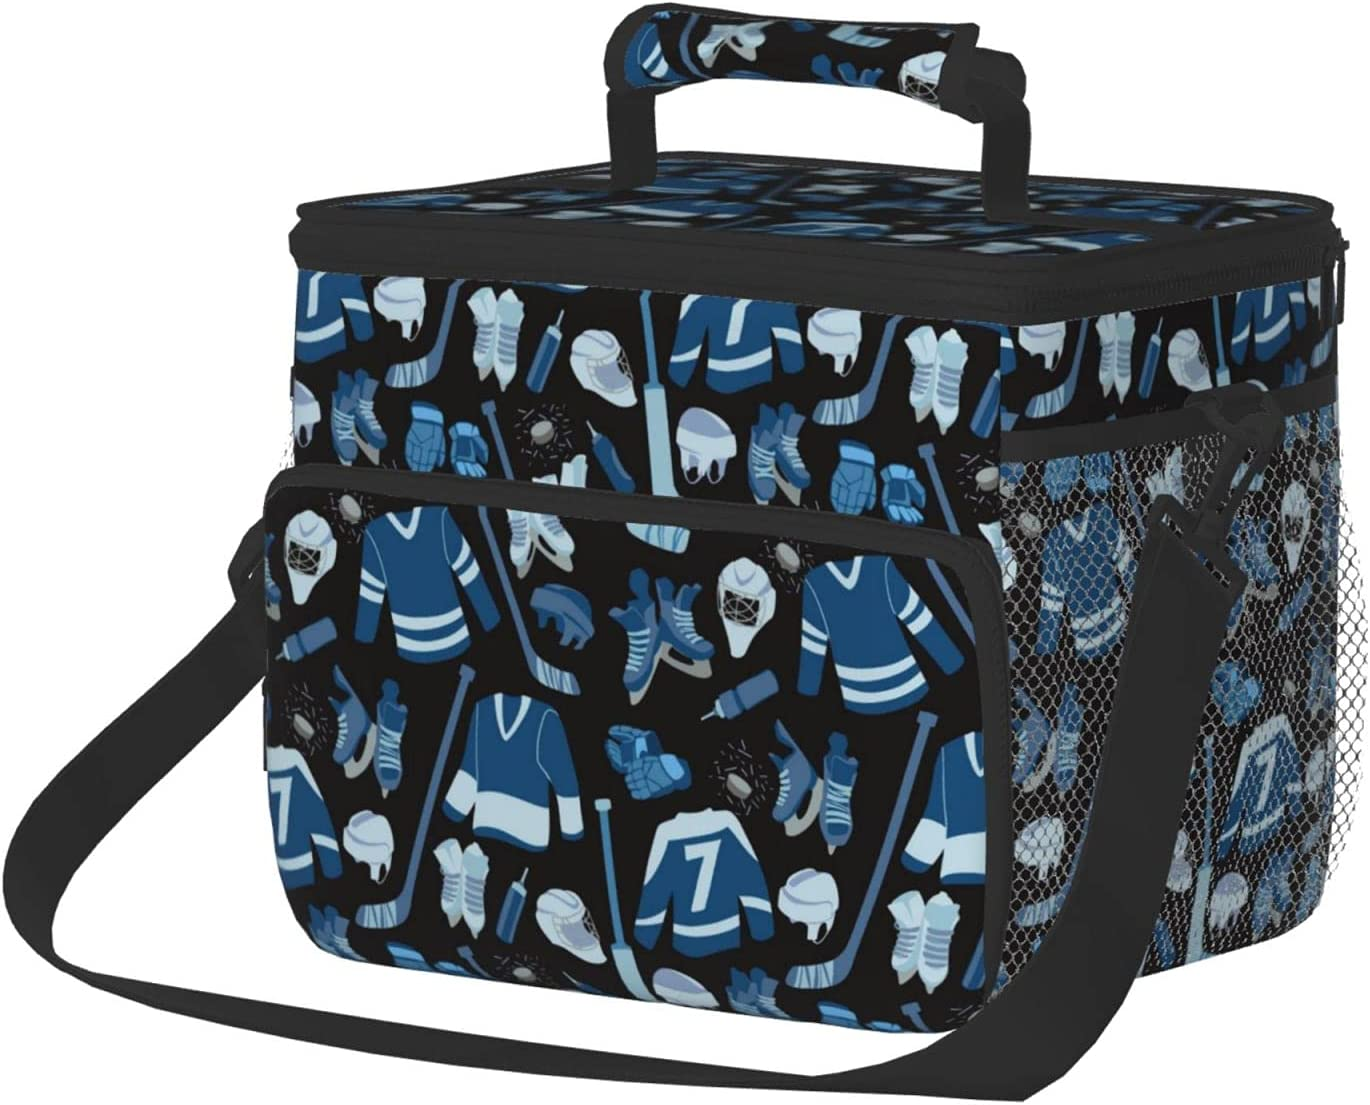 Insulated Lunch Bag Bombing free shipping For Women Men Box Reusable Office All items free shipping